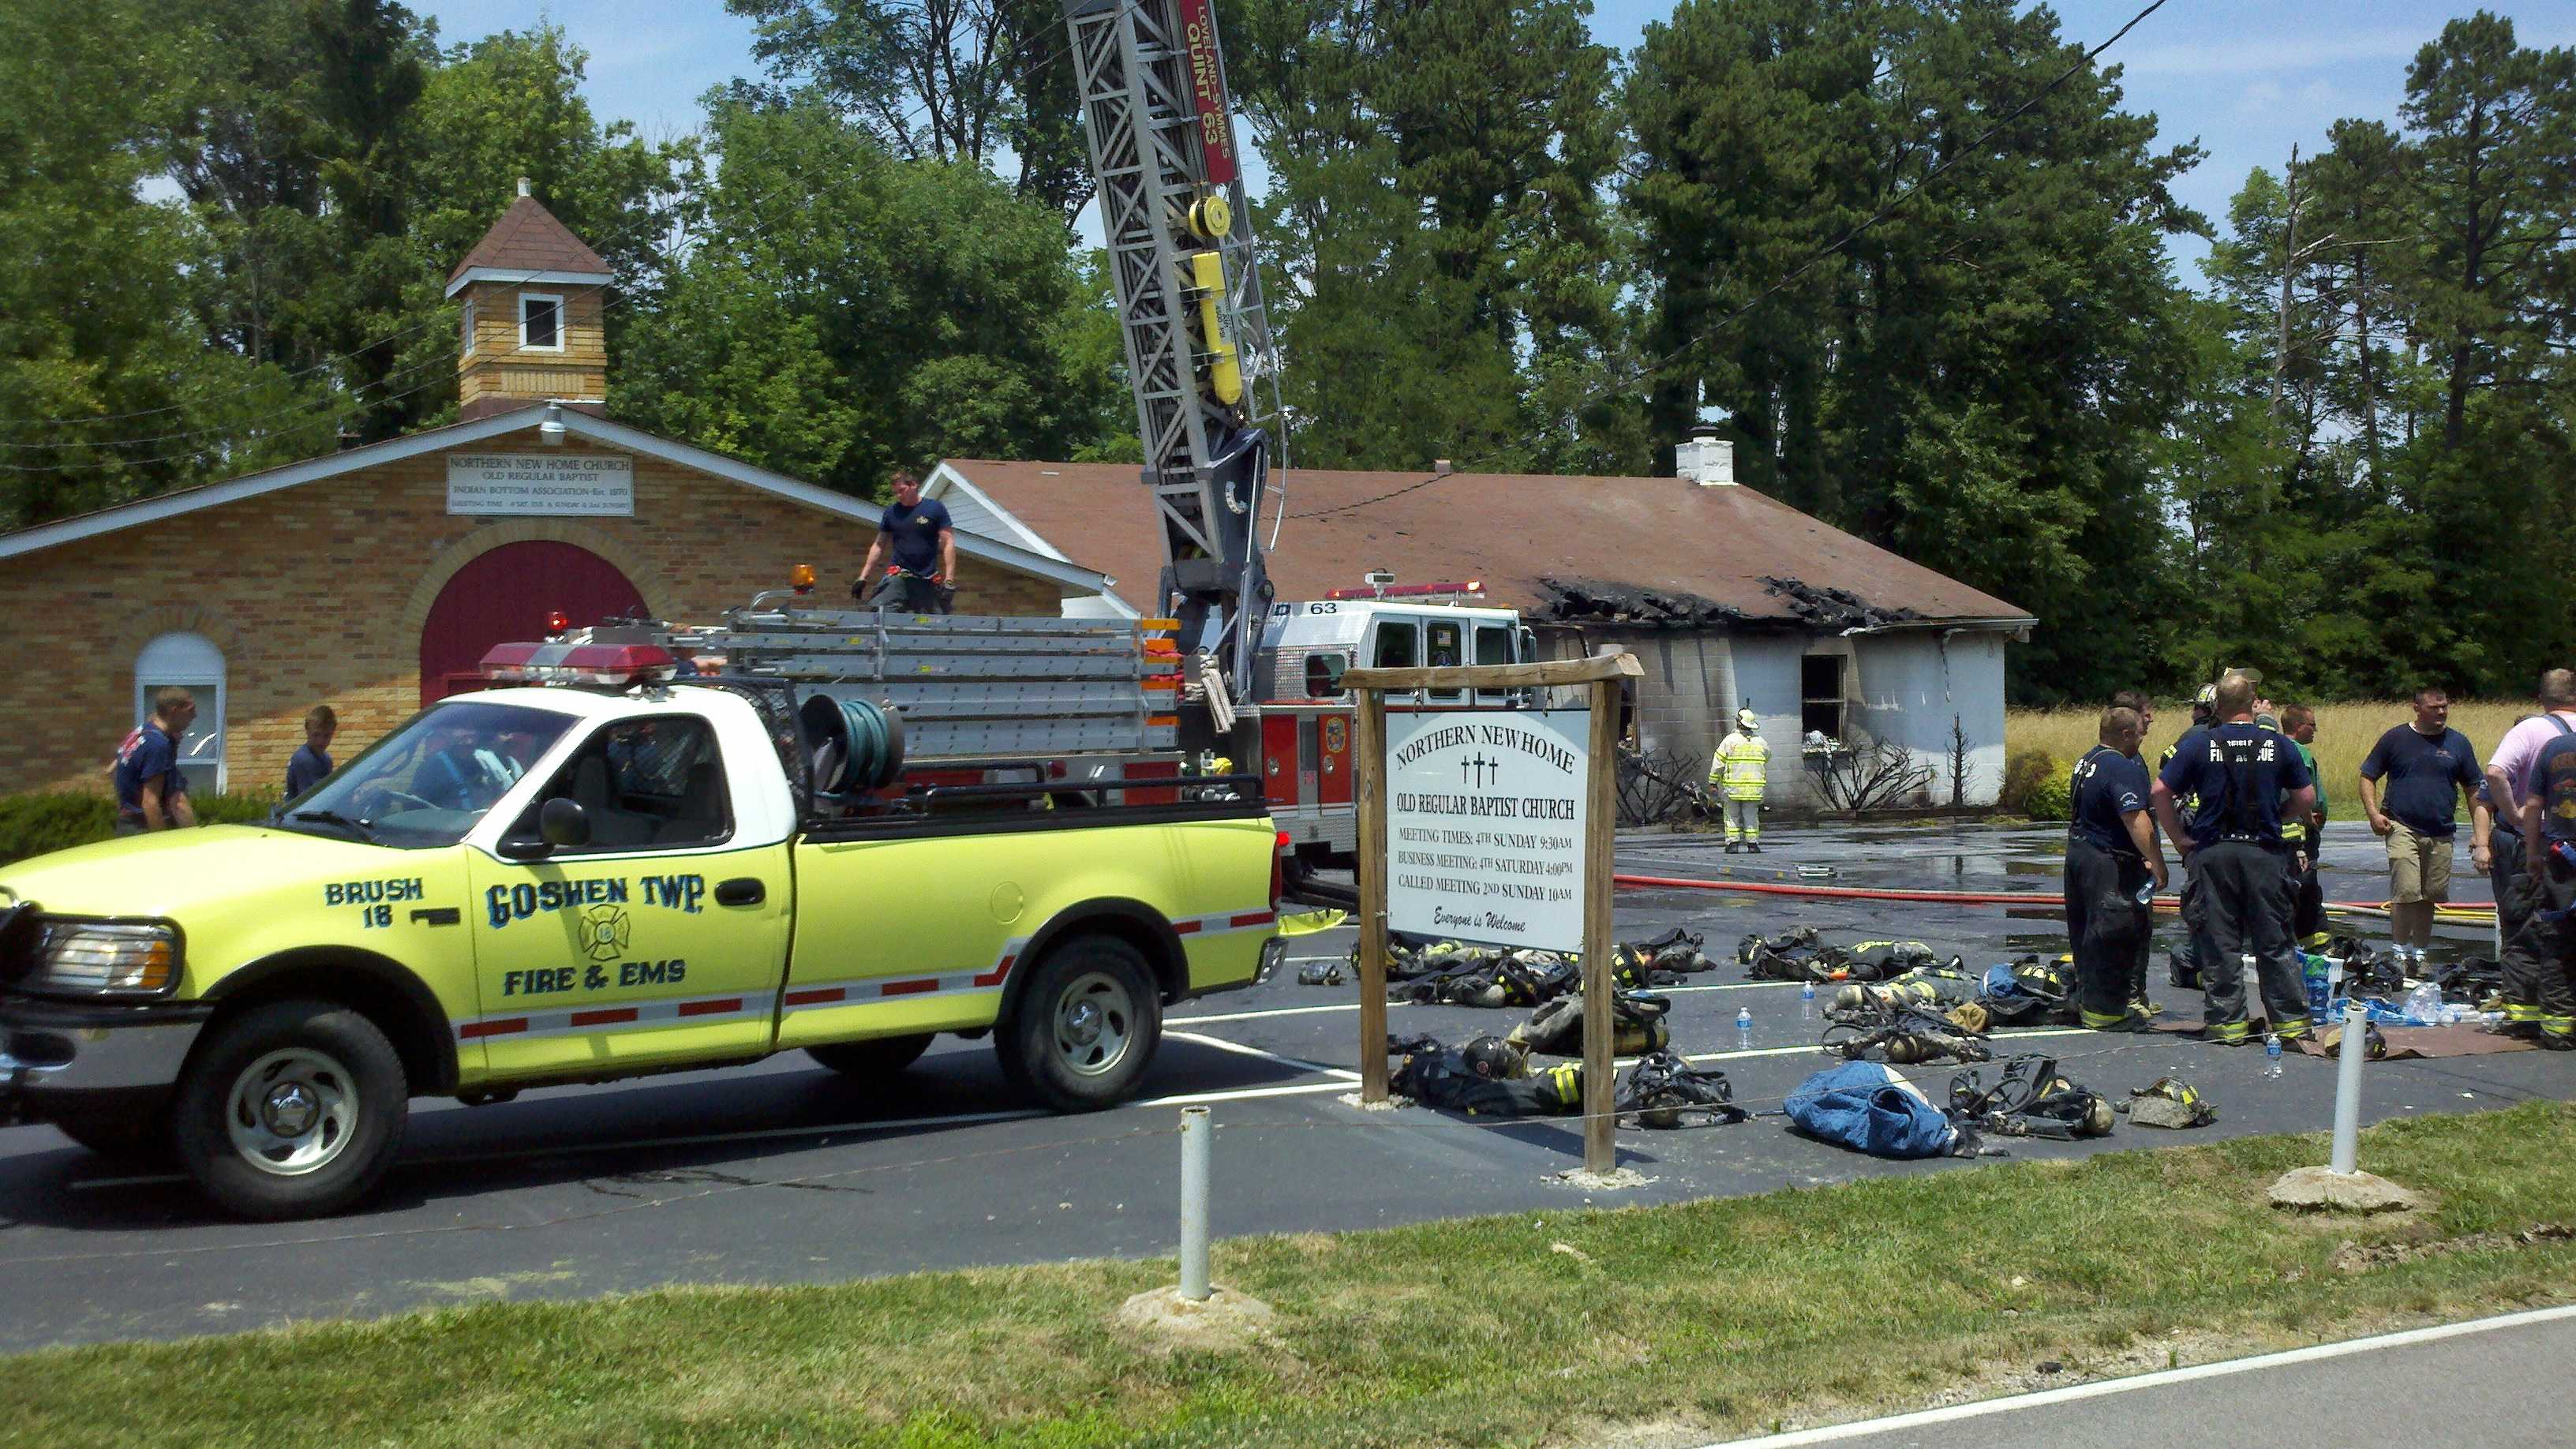 A church in Goshen Township caught fire during Sunday morning activities.